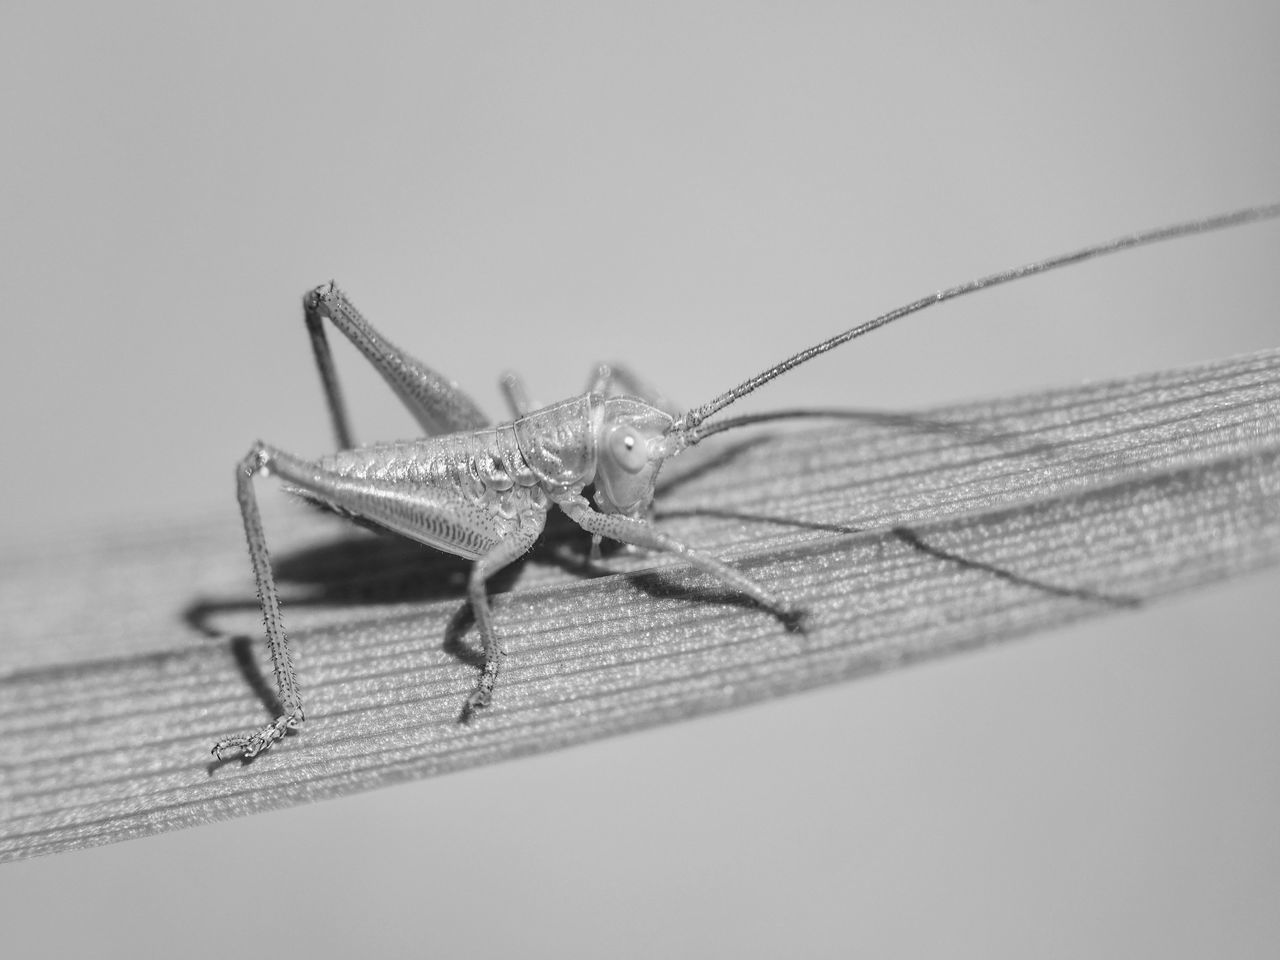 Grasshopper Animals Grasshoppers Black & White Nature Macro B&w Nature On Your Doorstep Close Up Closeup Close-up Macro_collection Nature_collection Outdoors Bnw Bnw_collection Black&white Black And White Animal_collection Animal Themes Taking Photos Outdoors Photograpghy  Macro Photography Offspring Extreme Close Up